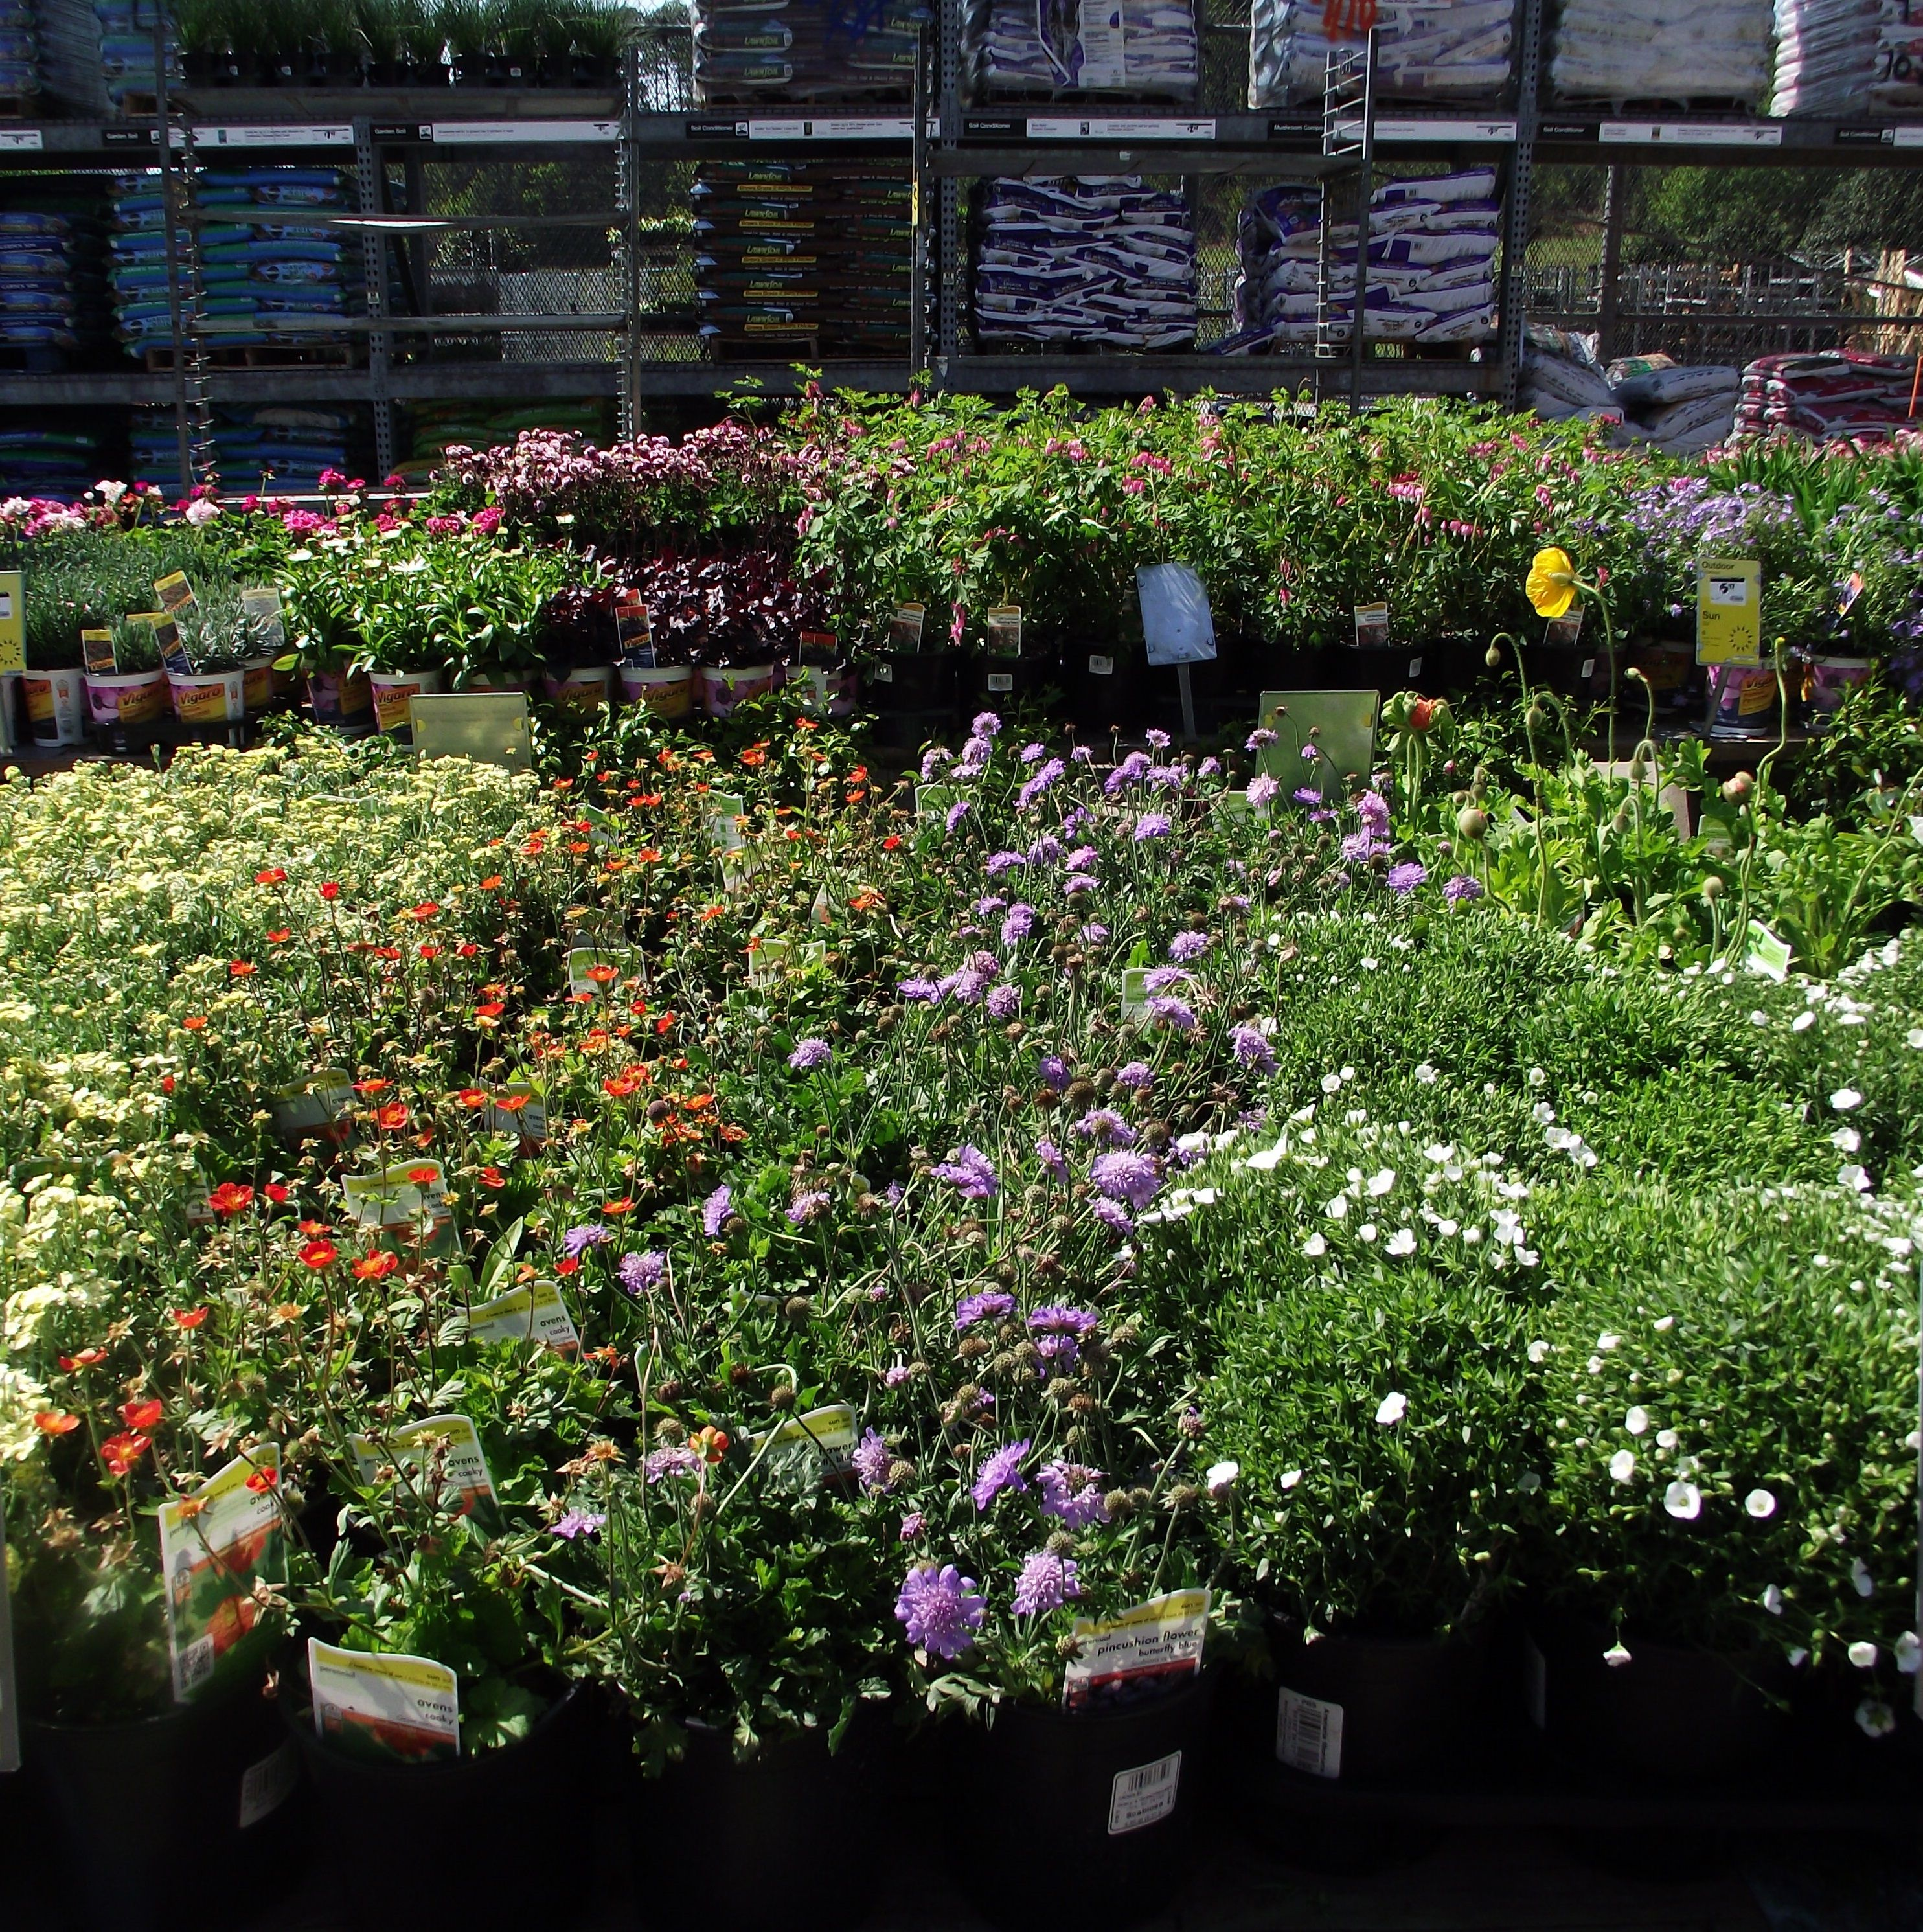 Shopping for flowers for my DIY spring project sponsored